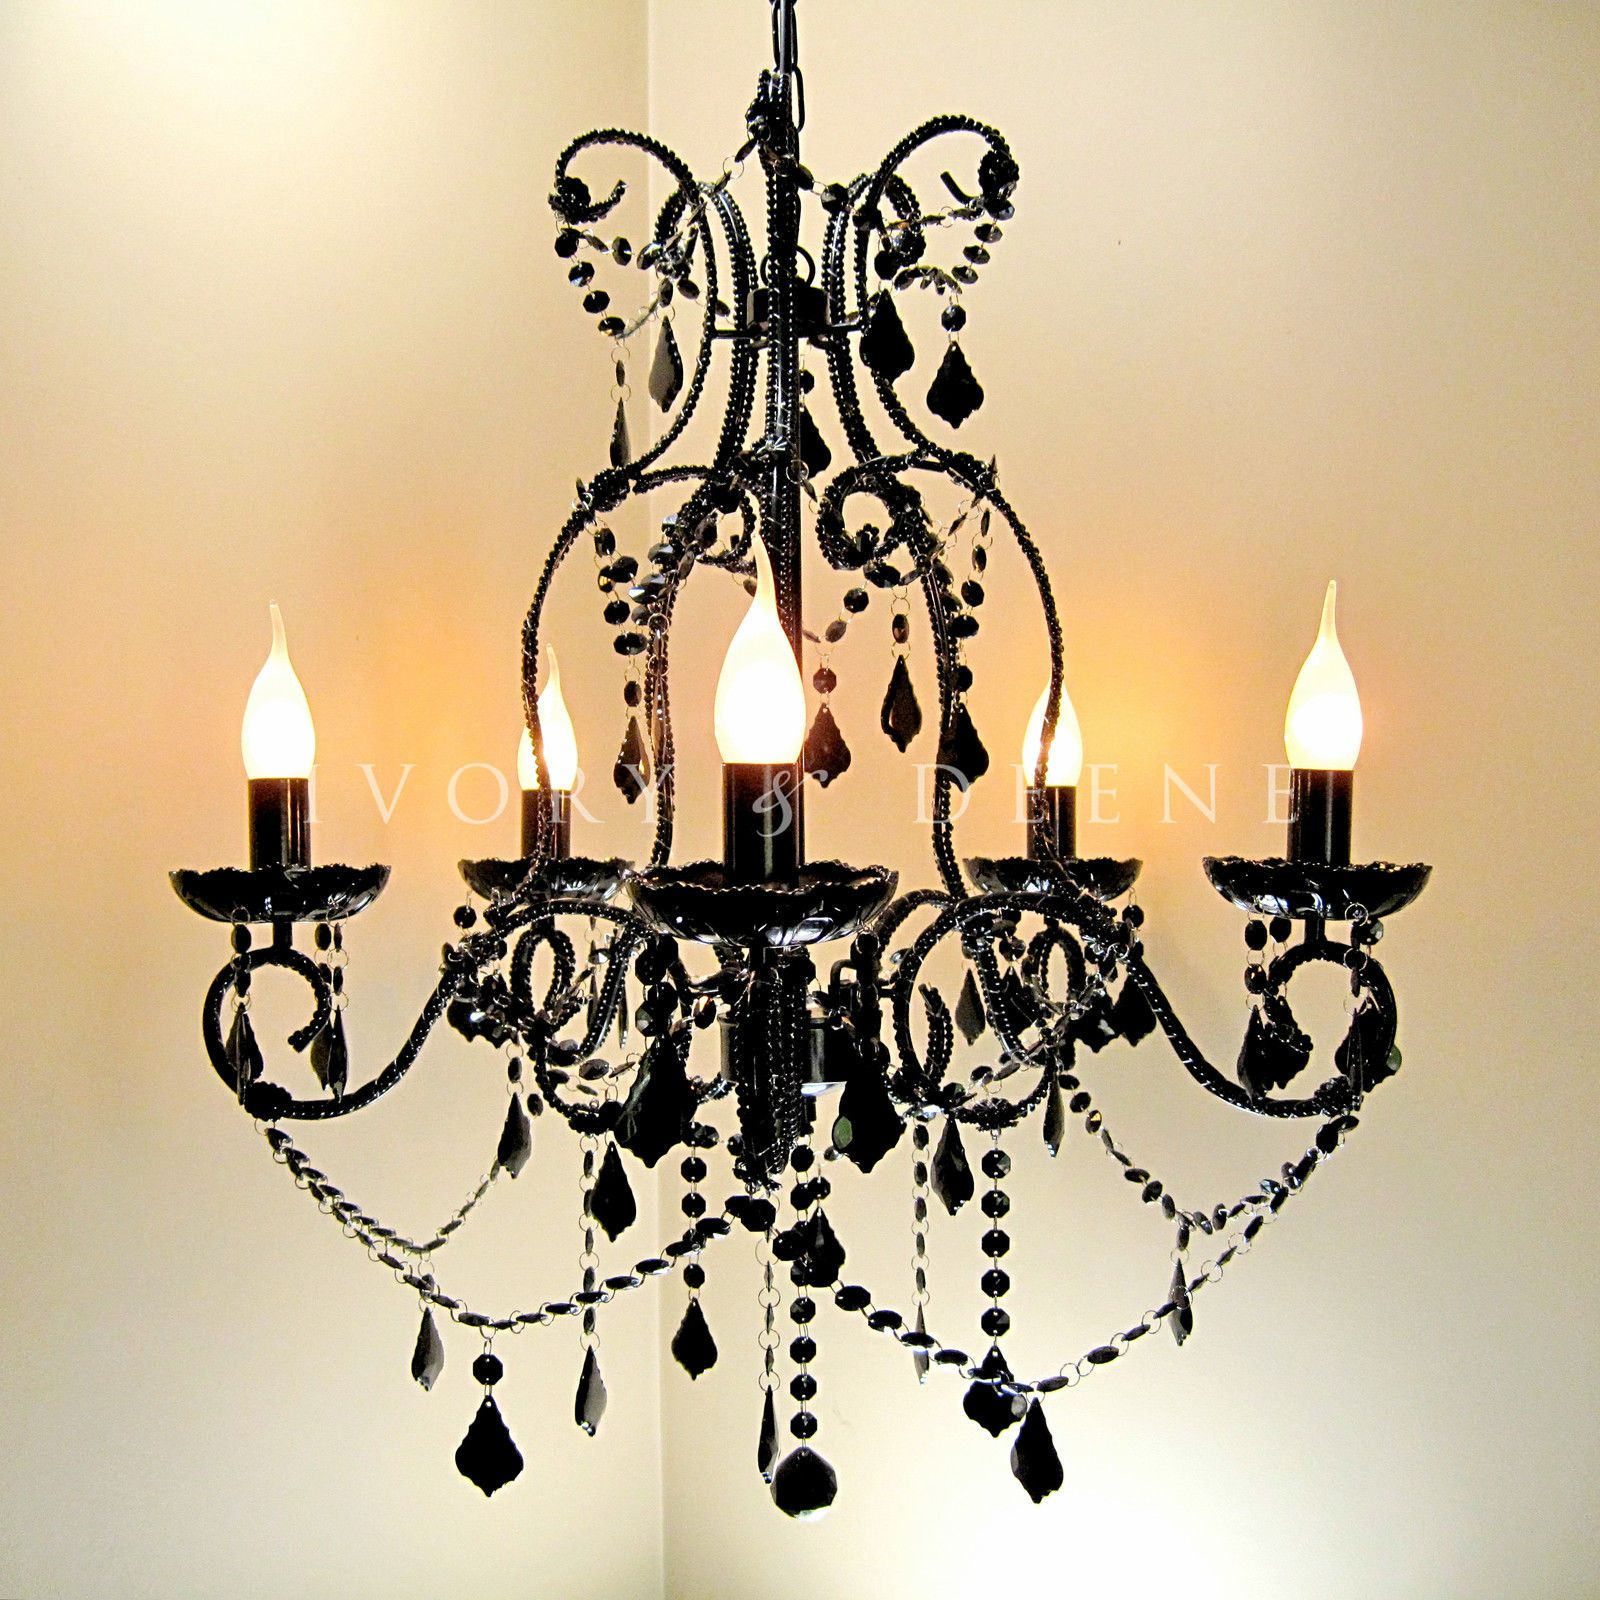 Black Chandelier 5 Arm French Provincial Style Acrylic Crystals